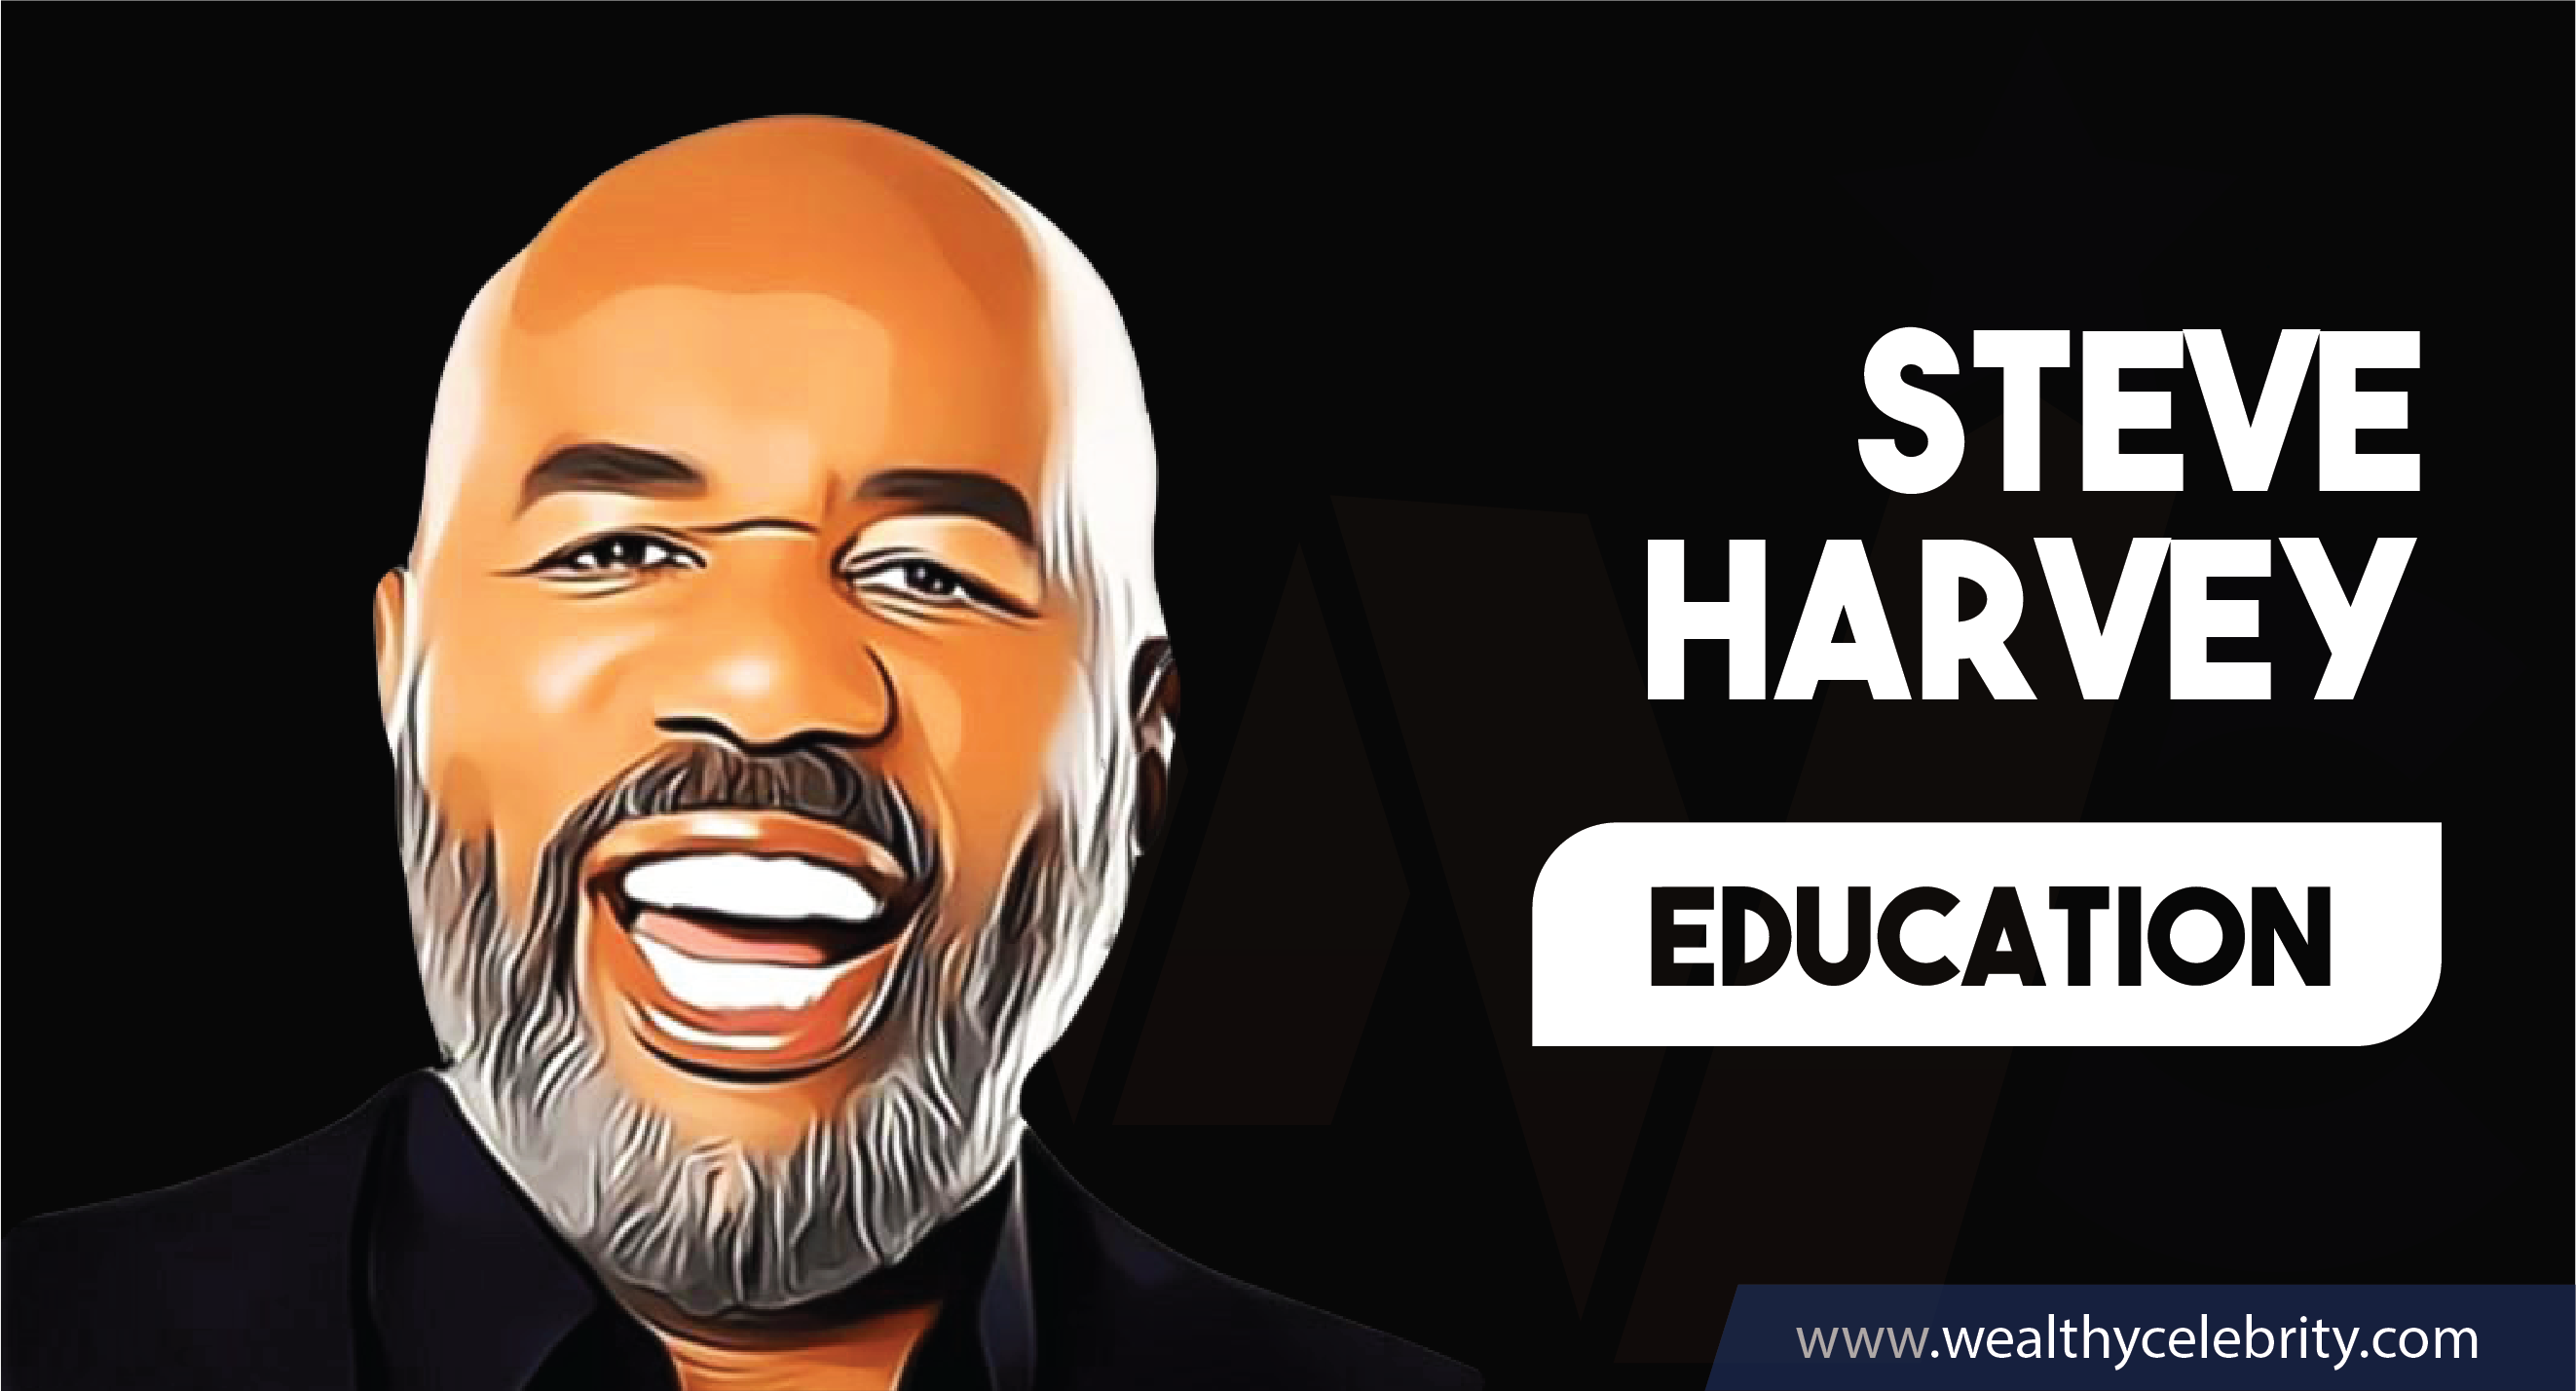 Steve Harvey_Education